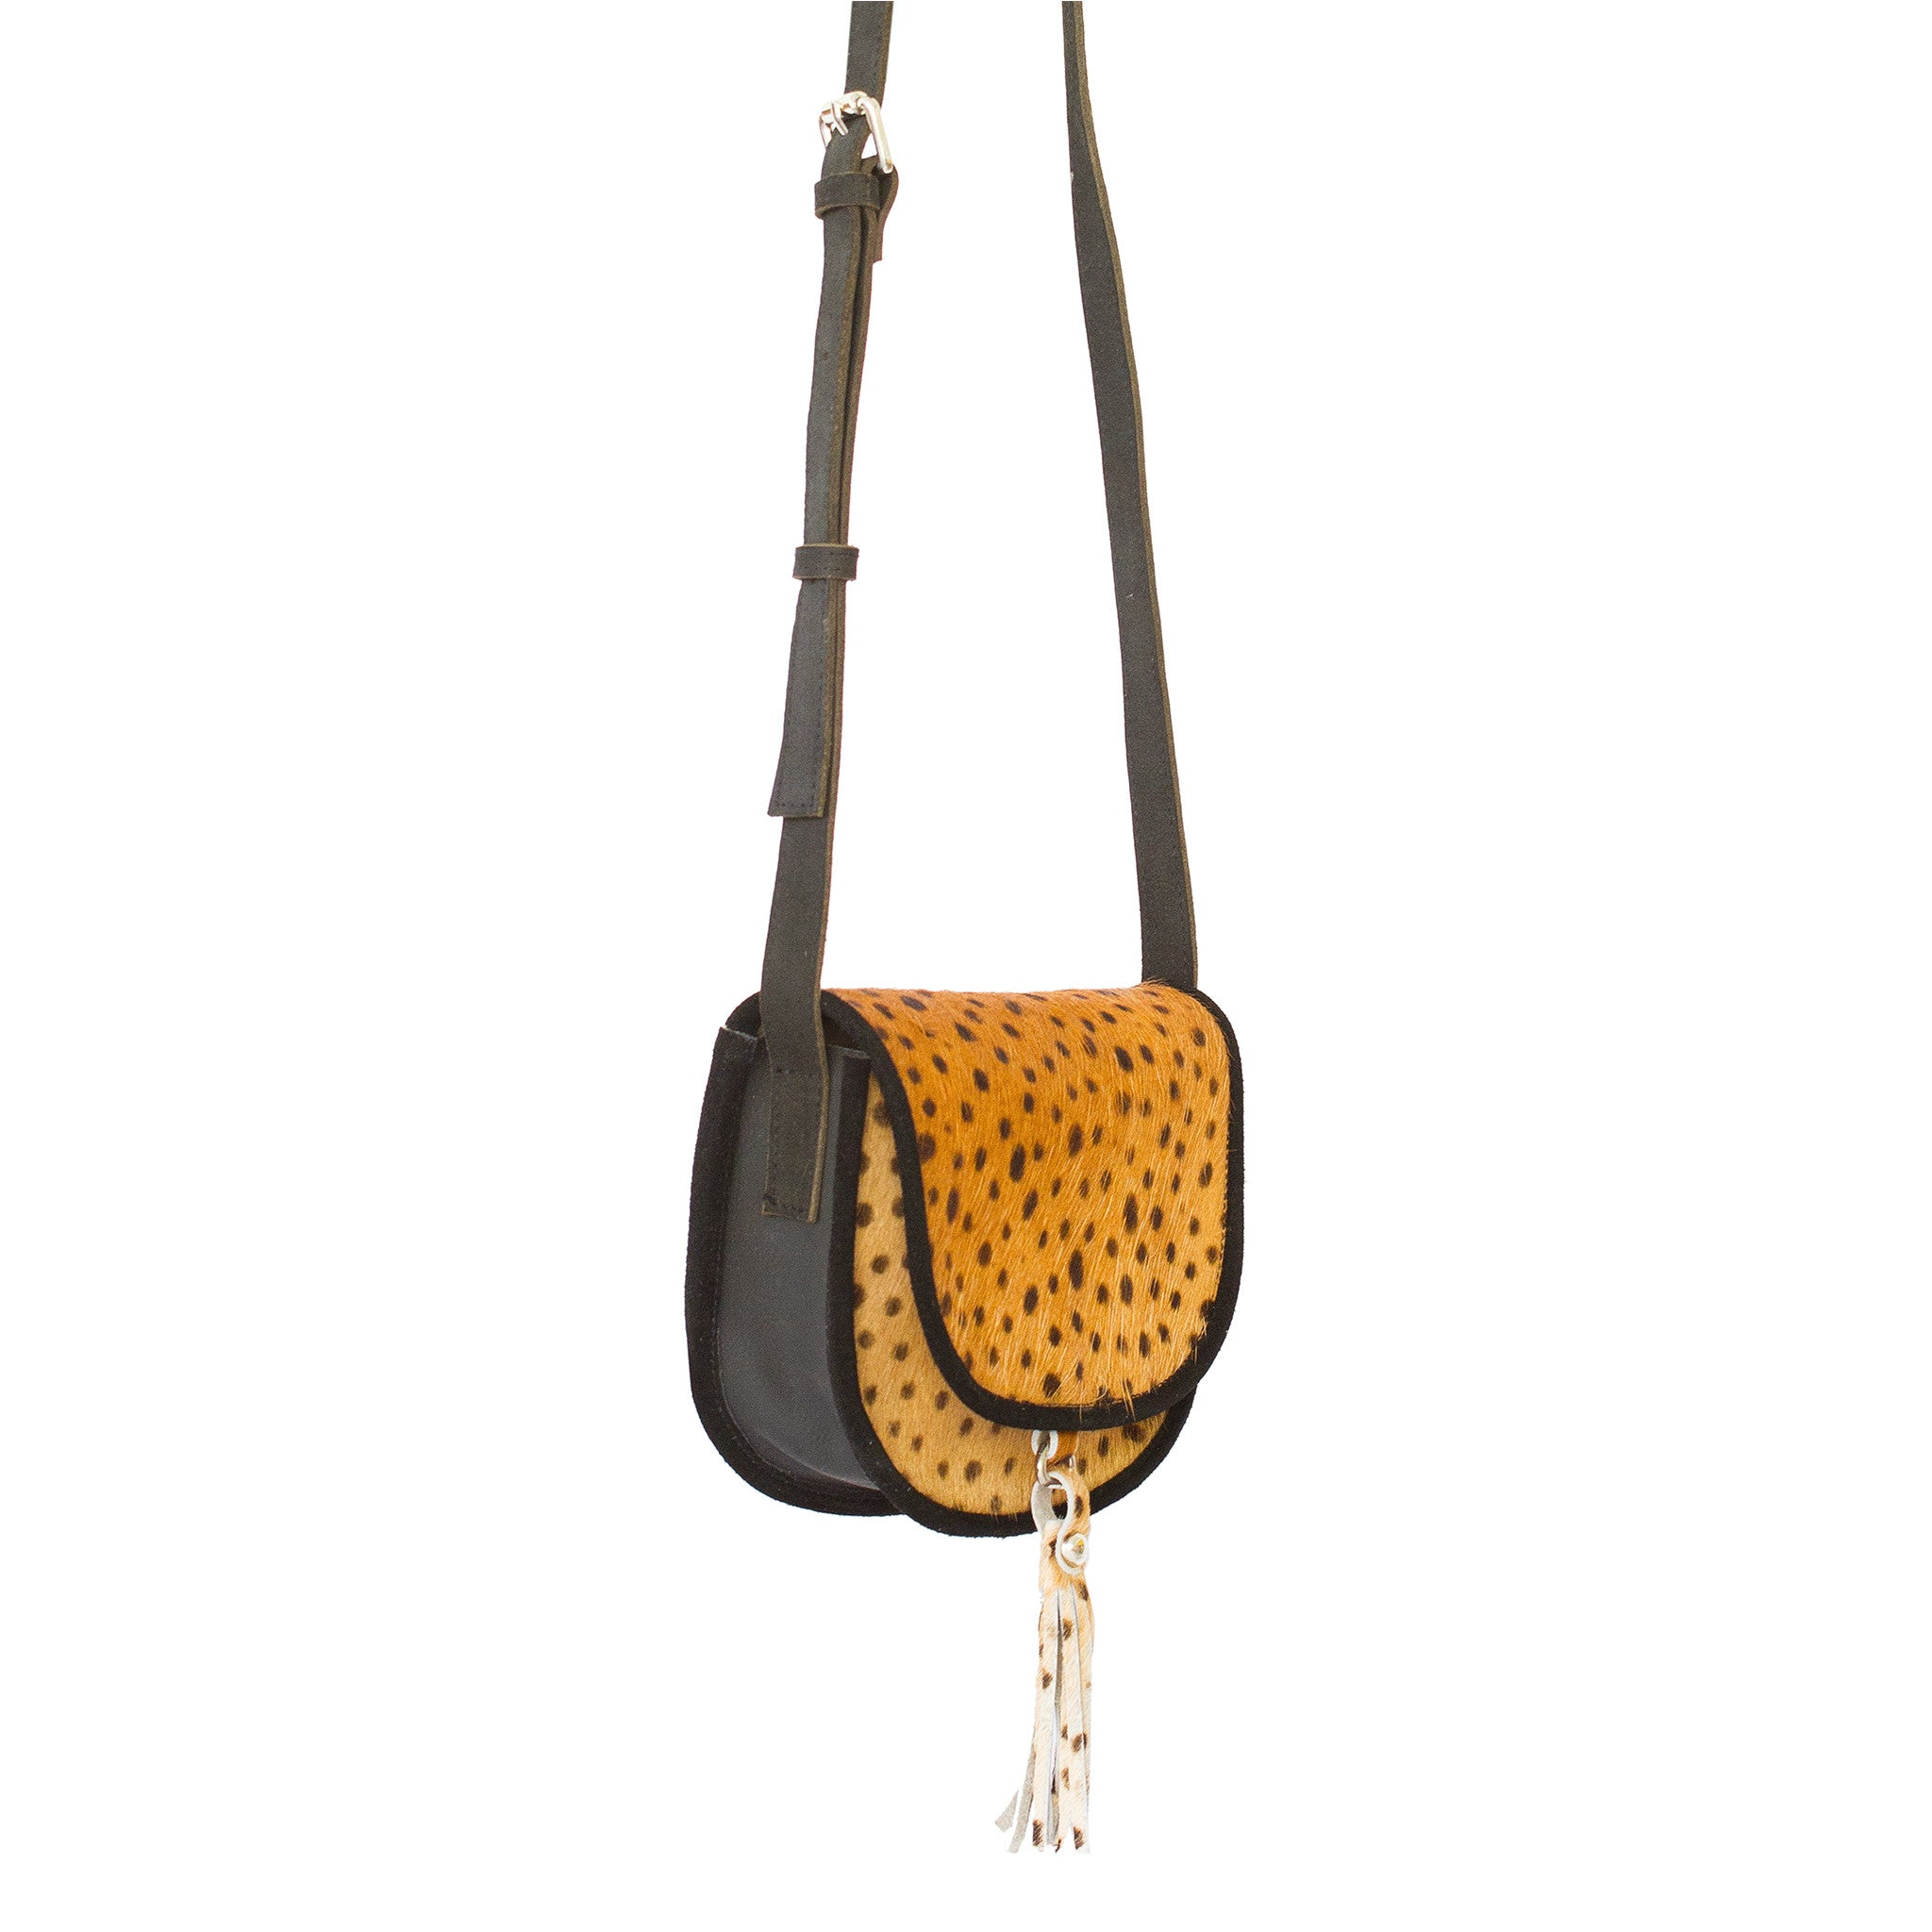 Crossbody Bags; Cheap Crossbody bags and purses; Saddle bag; Saddle Crossbody Bag; Leather Crossbody Bag;